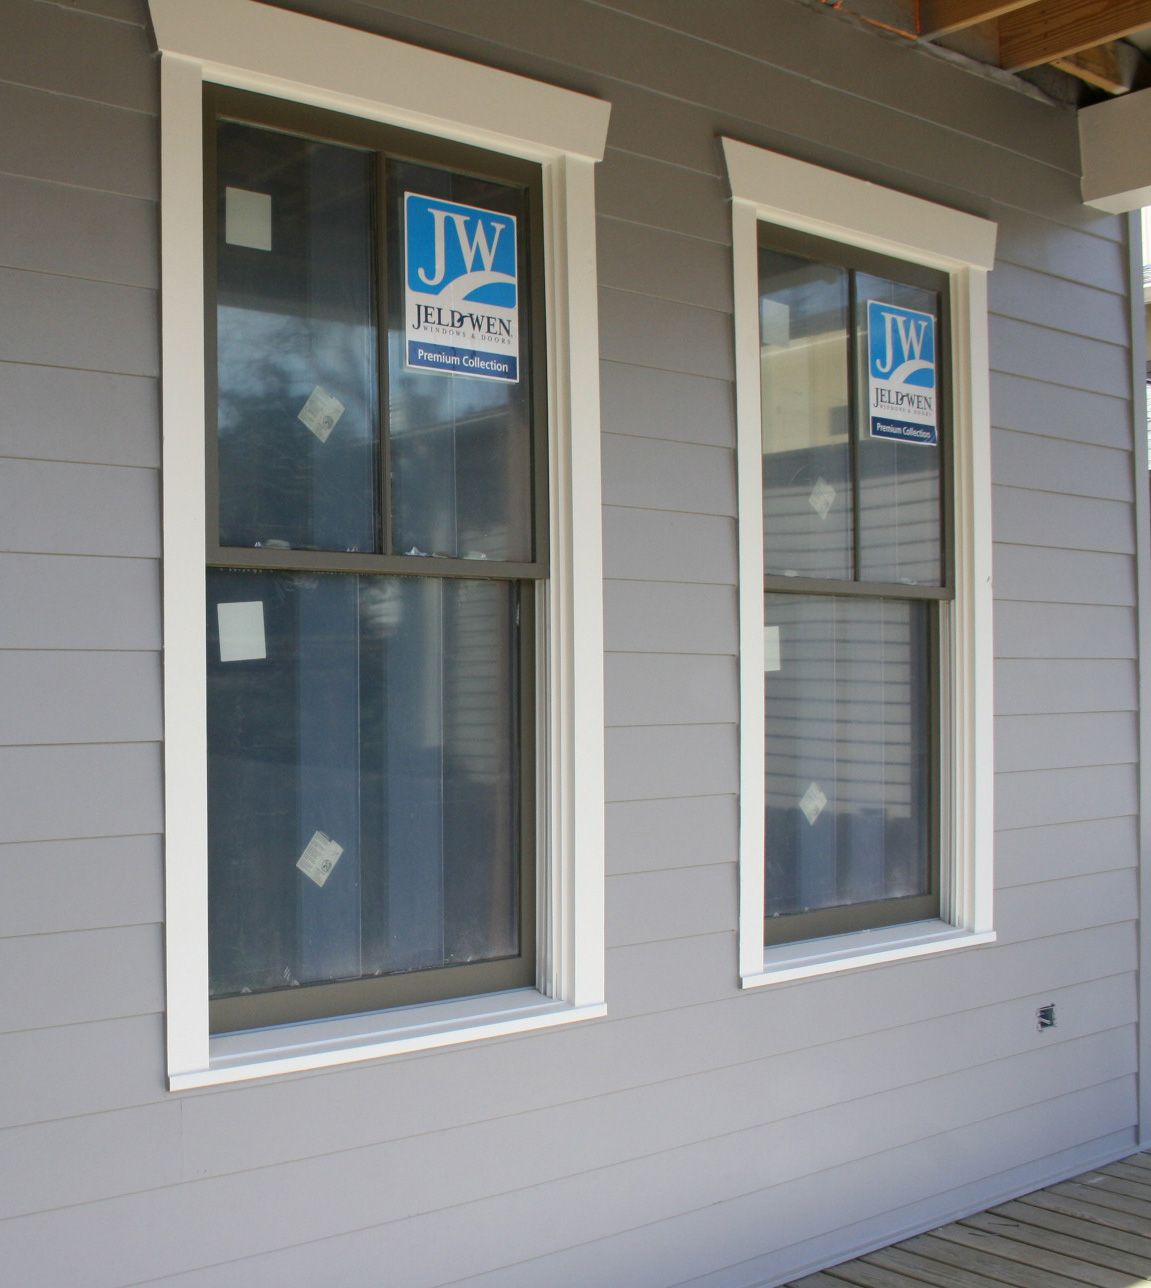 Craftsman style exterior window trim - Window